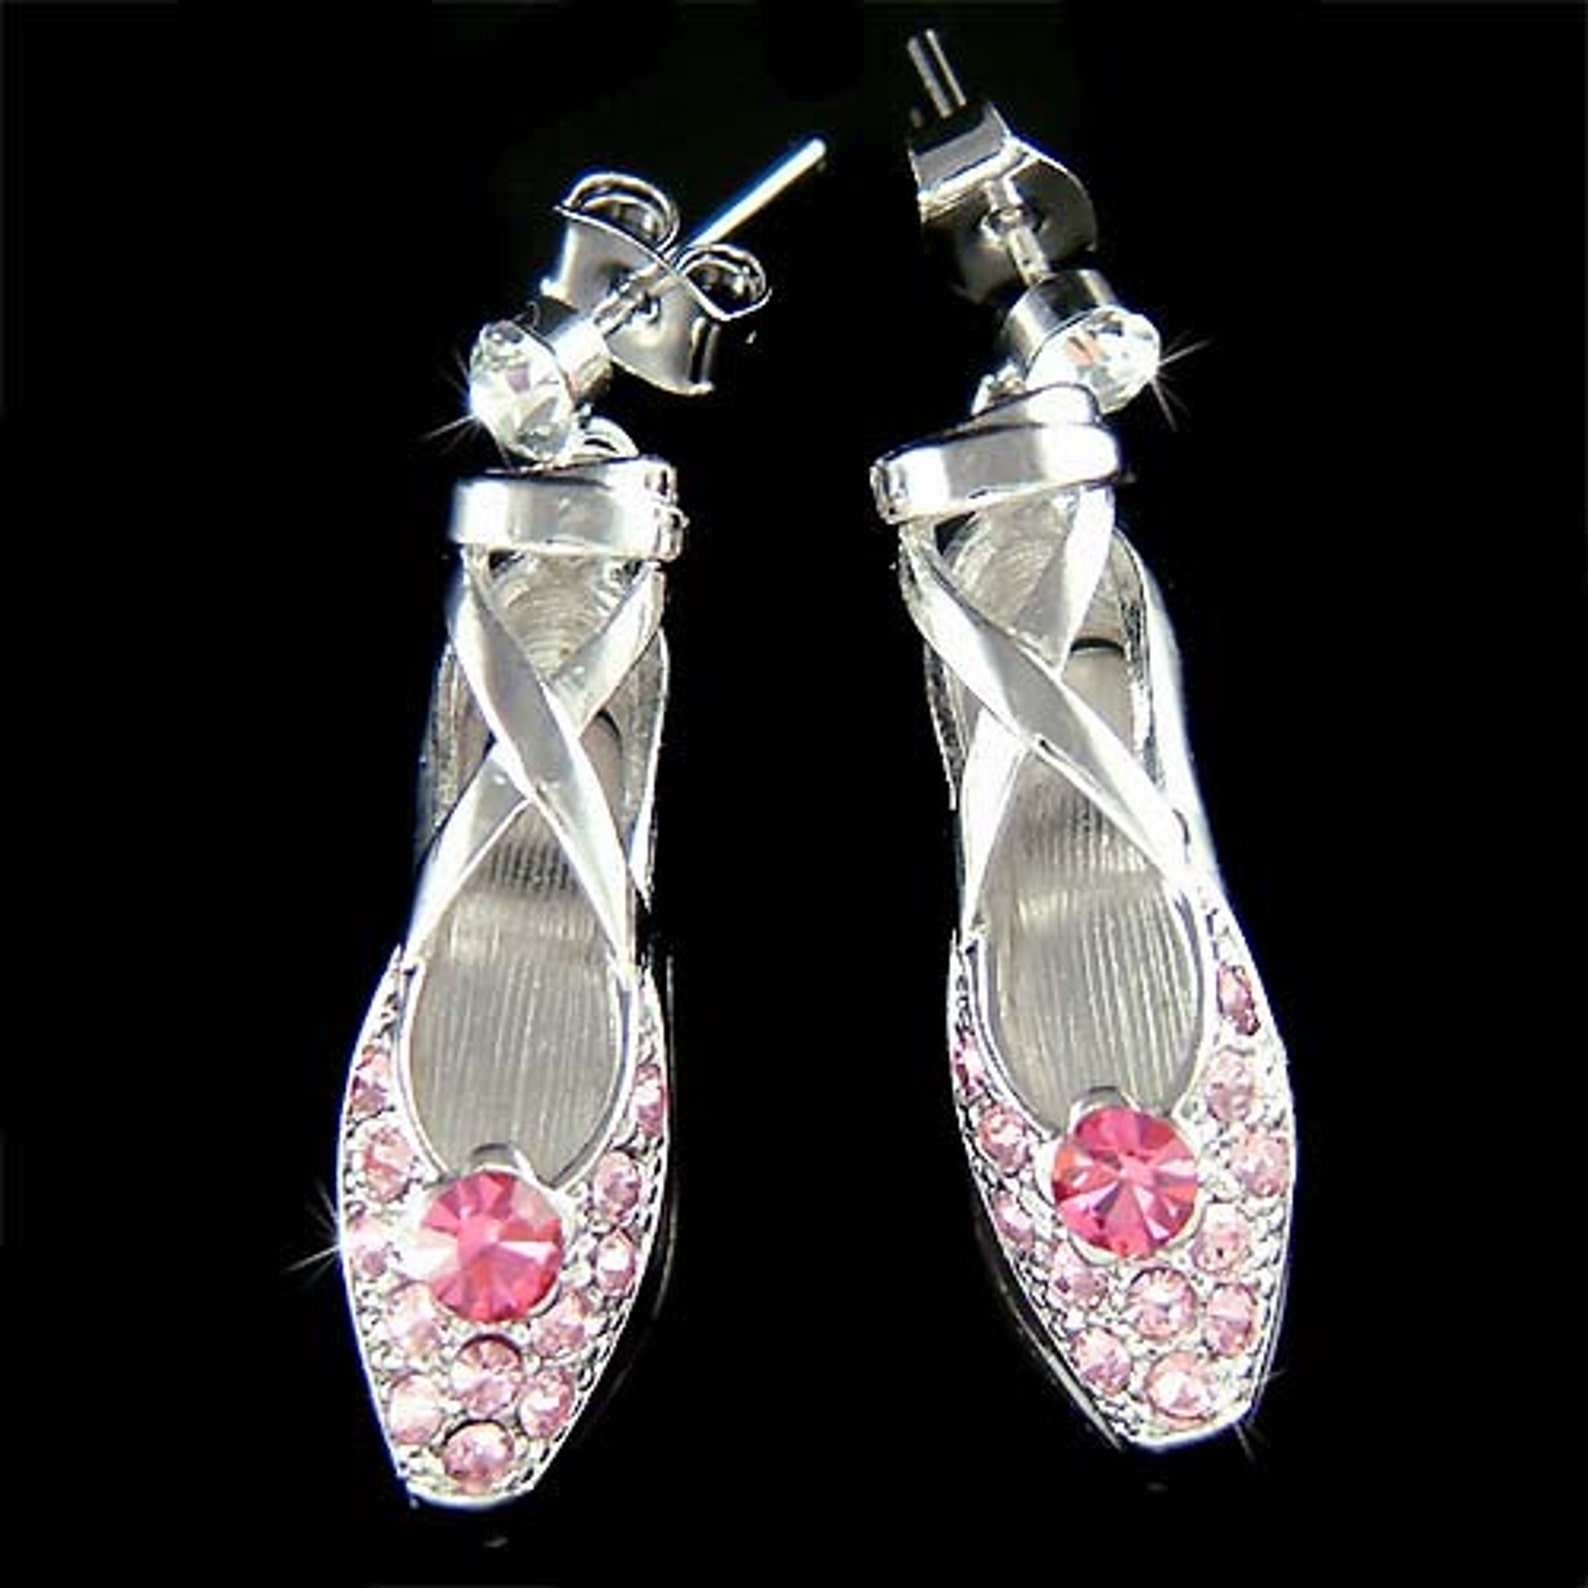 pink swarovski crystal ballerina shoes slippers ballet dance earrings christmas gift new for the nutcracker swan lake lover